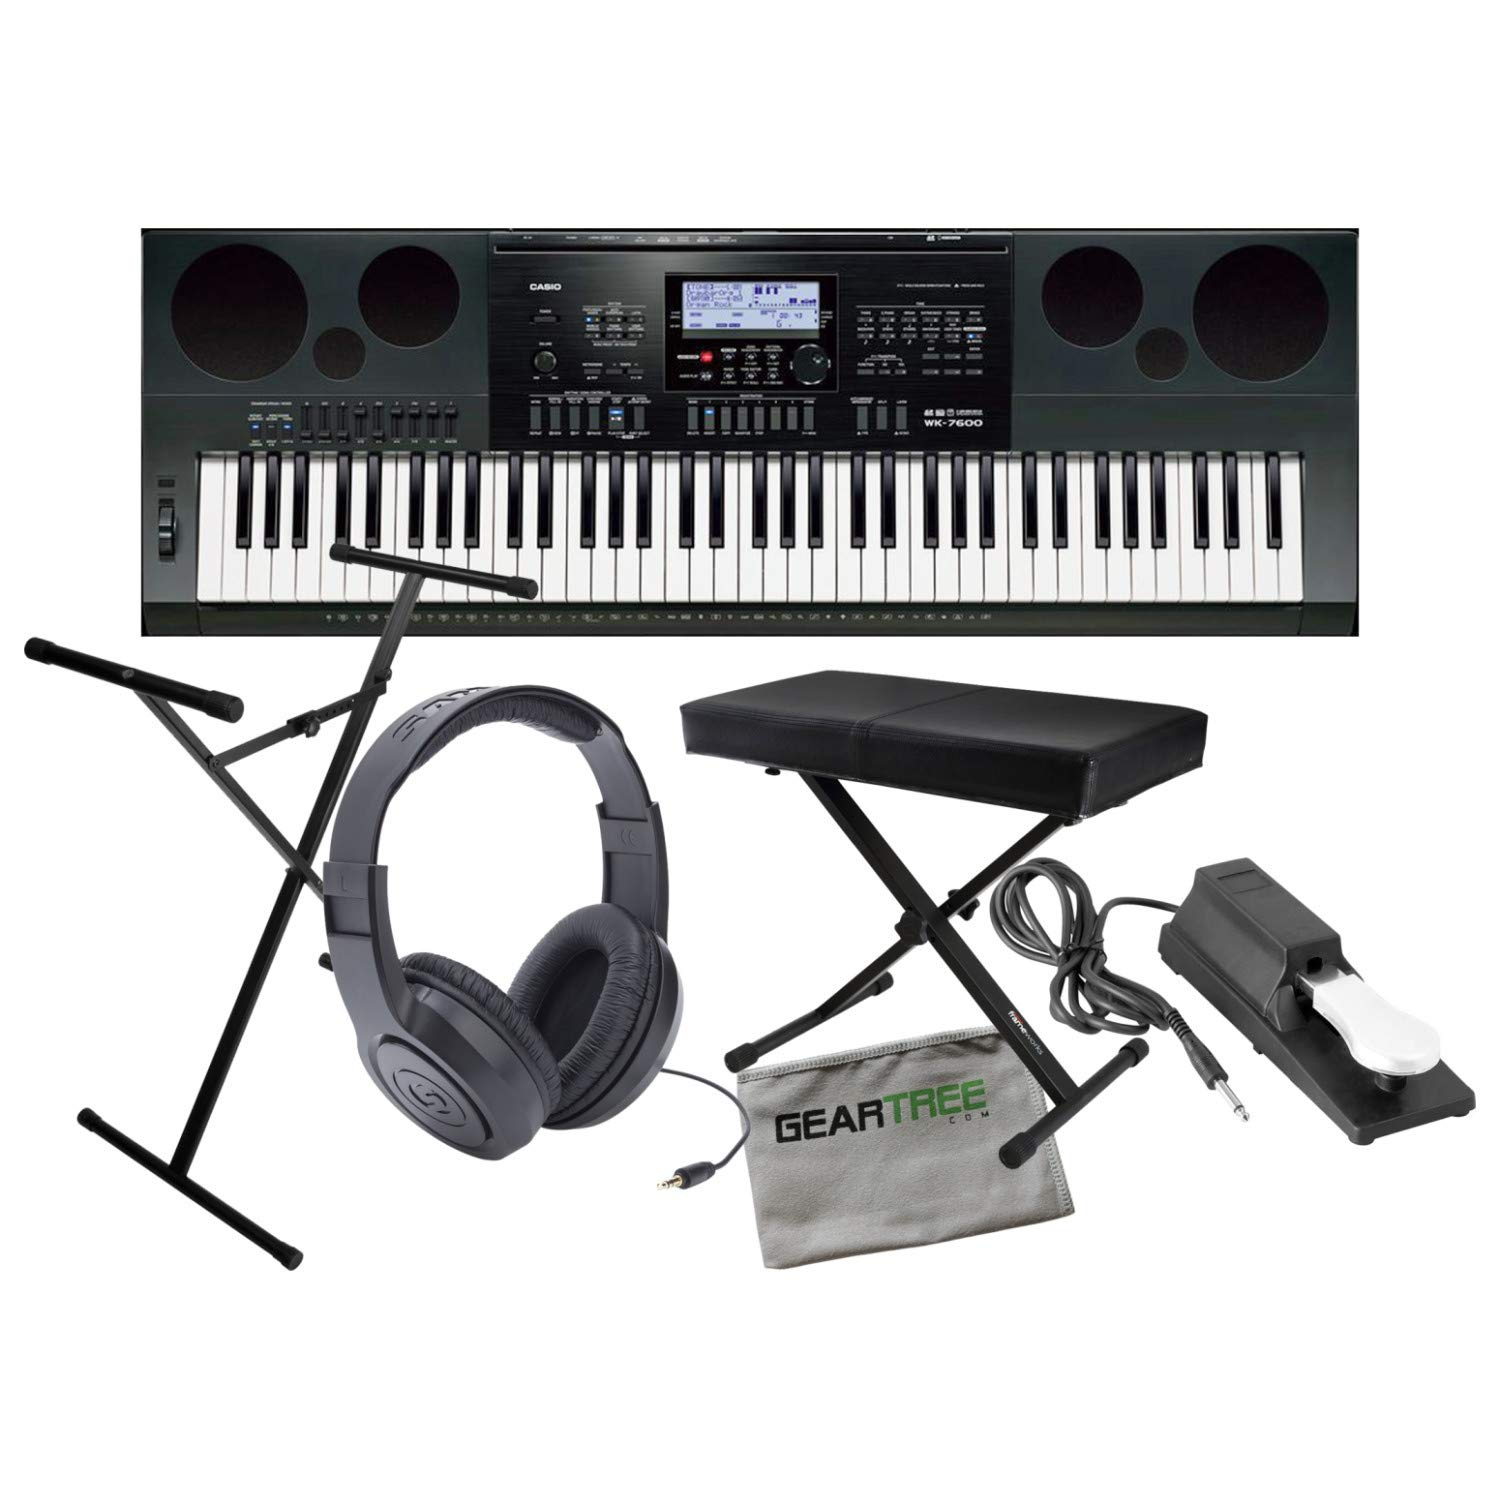 Casio WK7600 Workstation Keyboard w/ Bench, Stand, Sustain Pedal, and Headphones by Casio